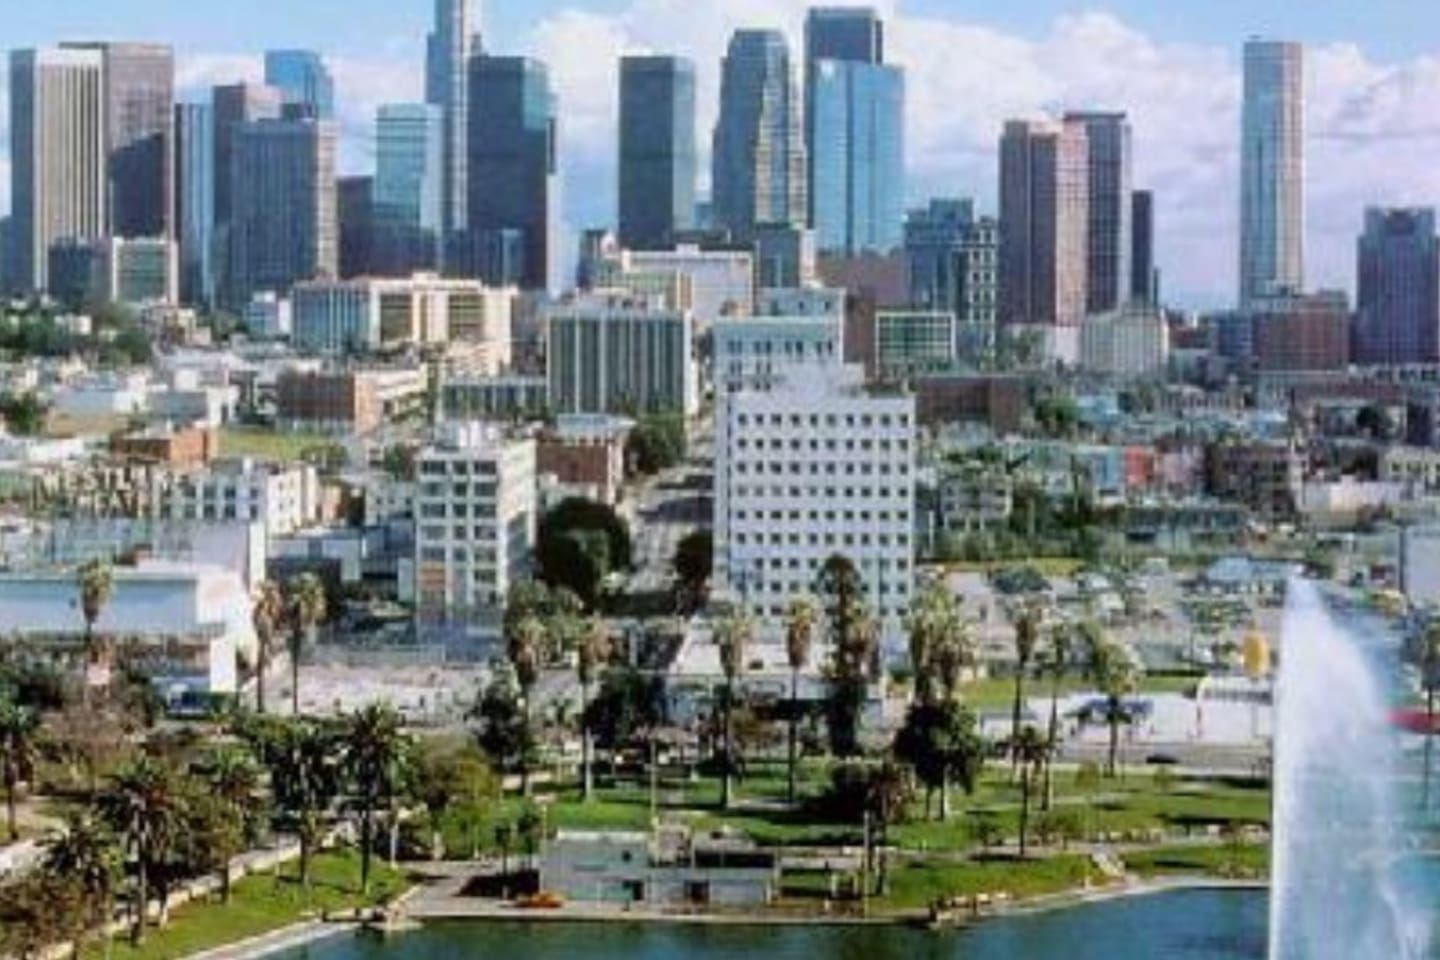 Welcome to Westlake, CA ~ home of MacArthur Park ☀️   -Photo is of the city/area & not taken from my apartment window.  But there are 2 awesome vantage point locations: 1.) From my kitchen window. 2.) From the fire escape, showcasing beautiful downtown Los Angeles.  (Actual view shown in my photos)